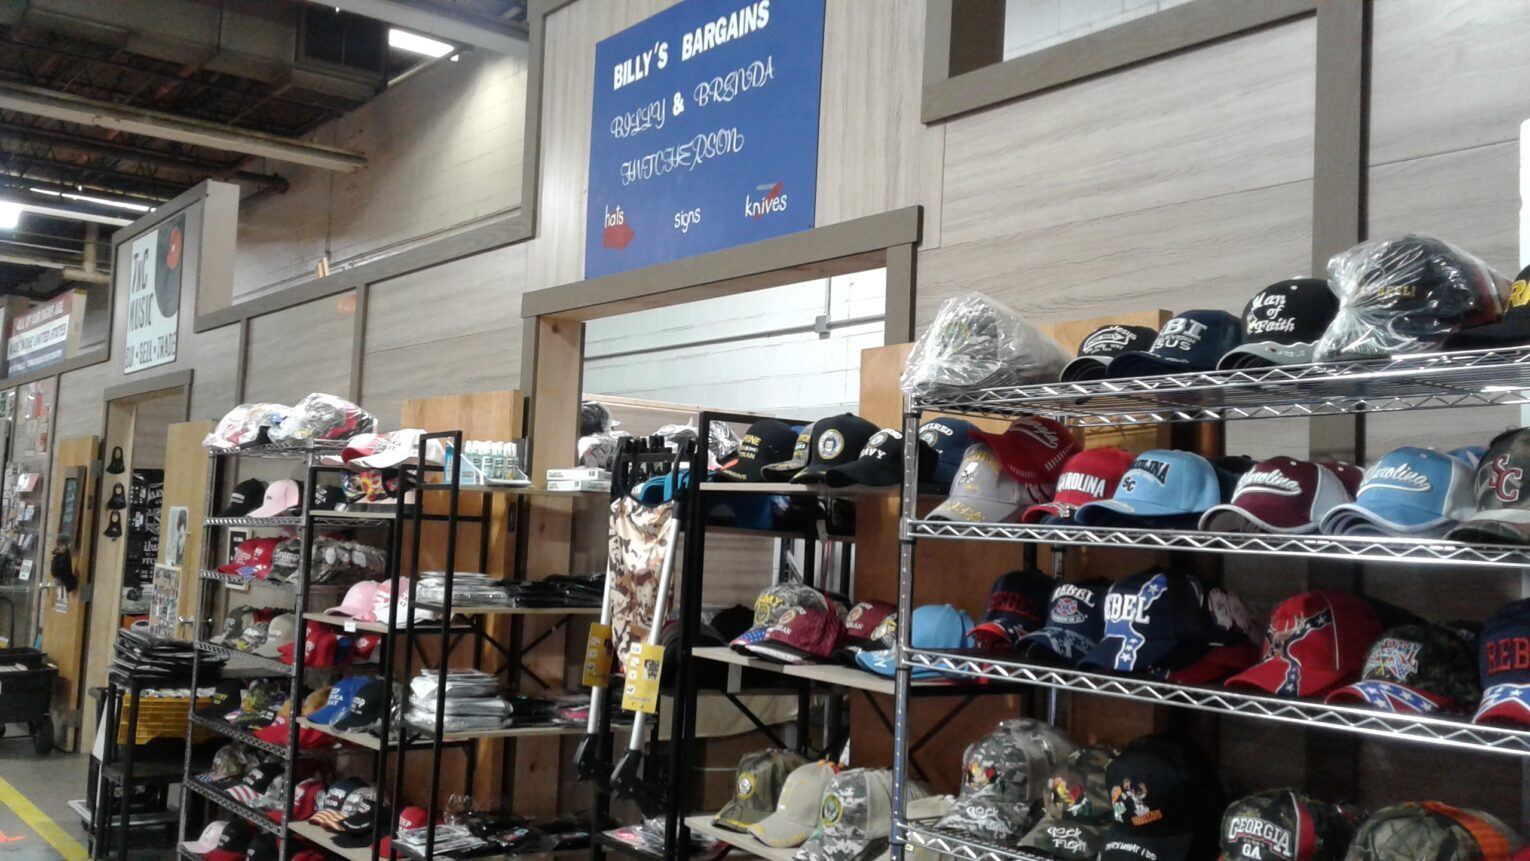 Billy's Bargains – P42